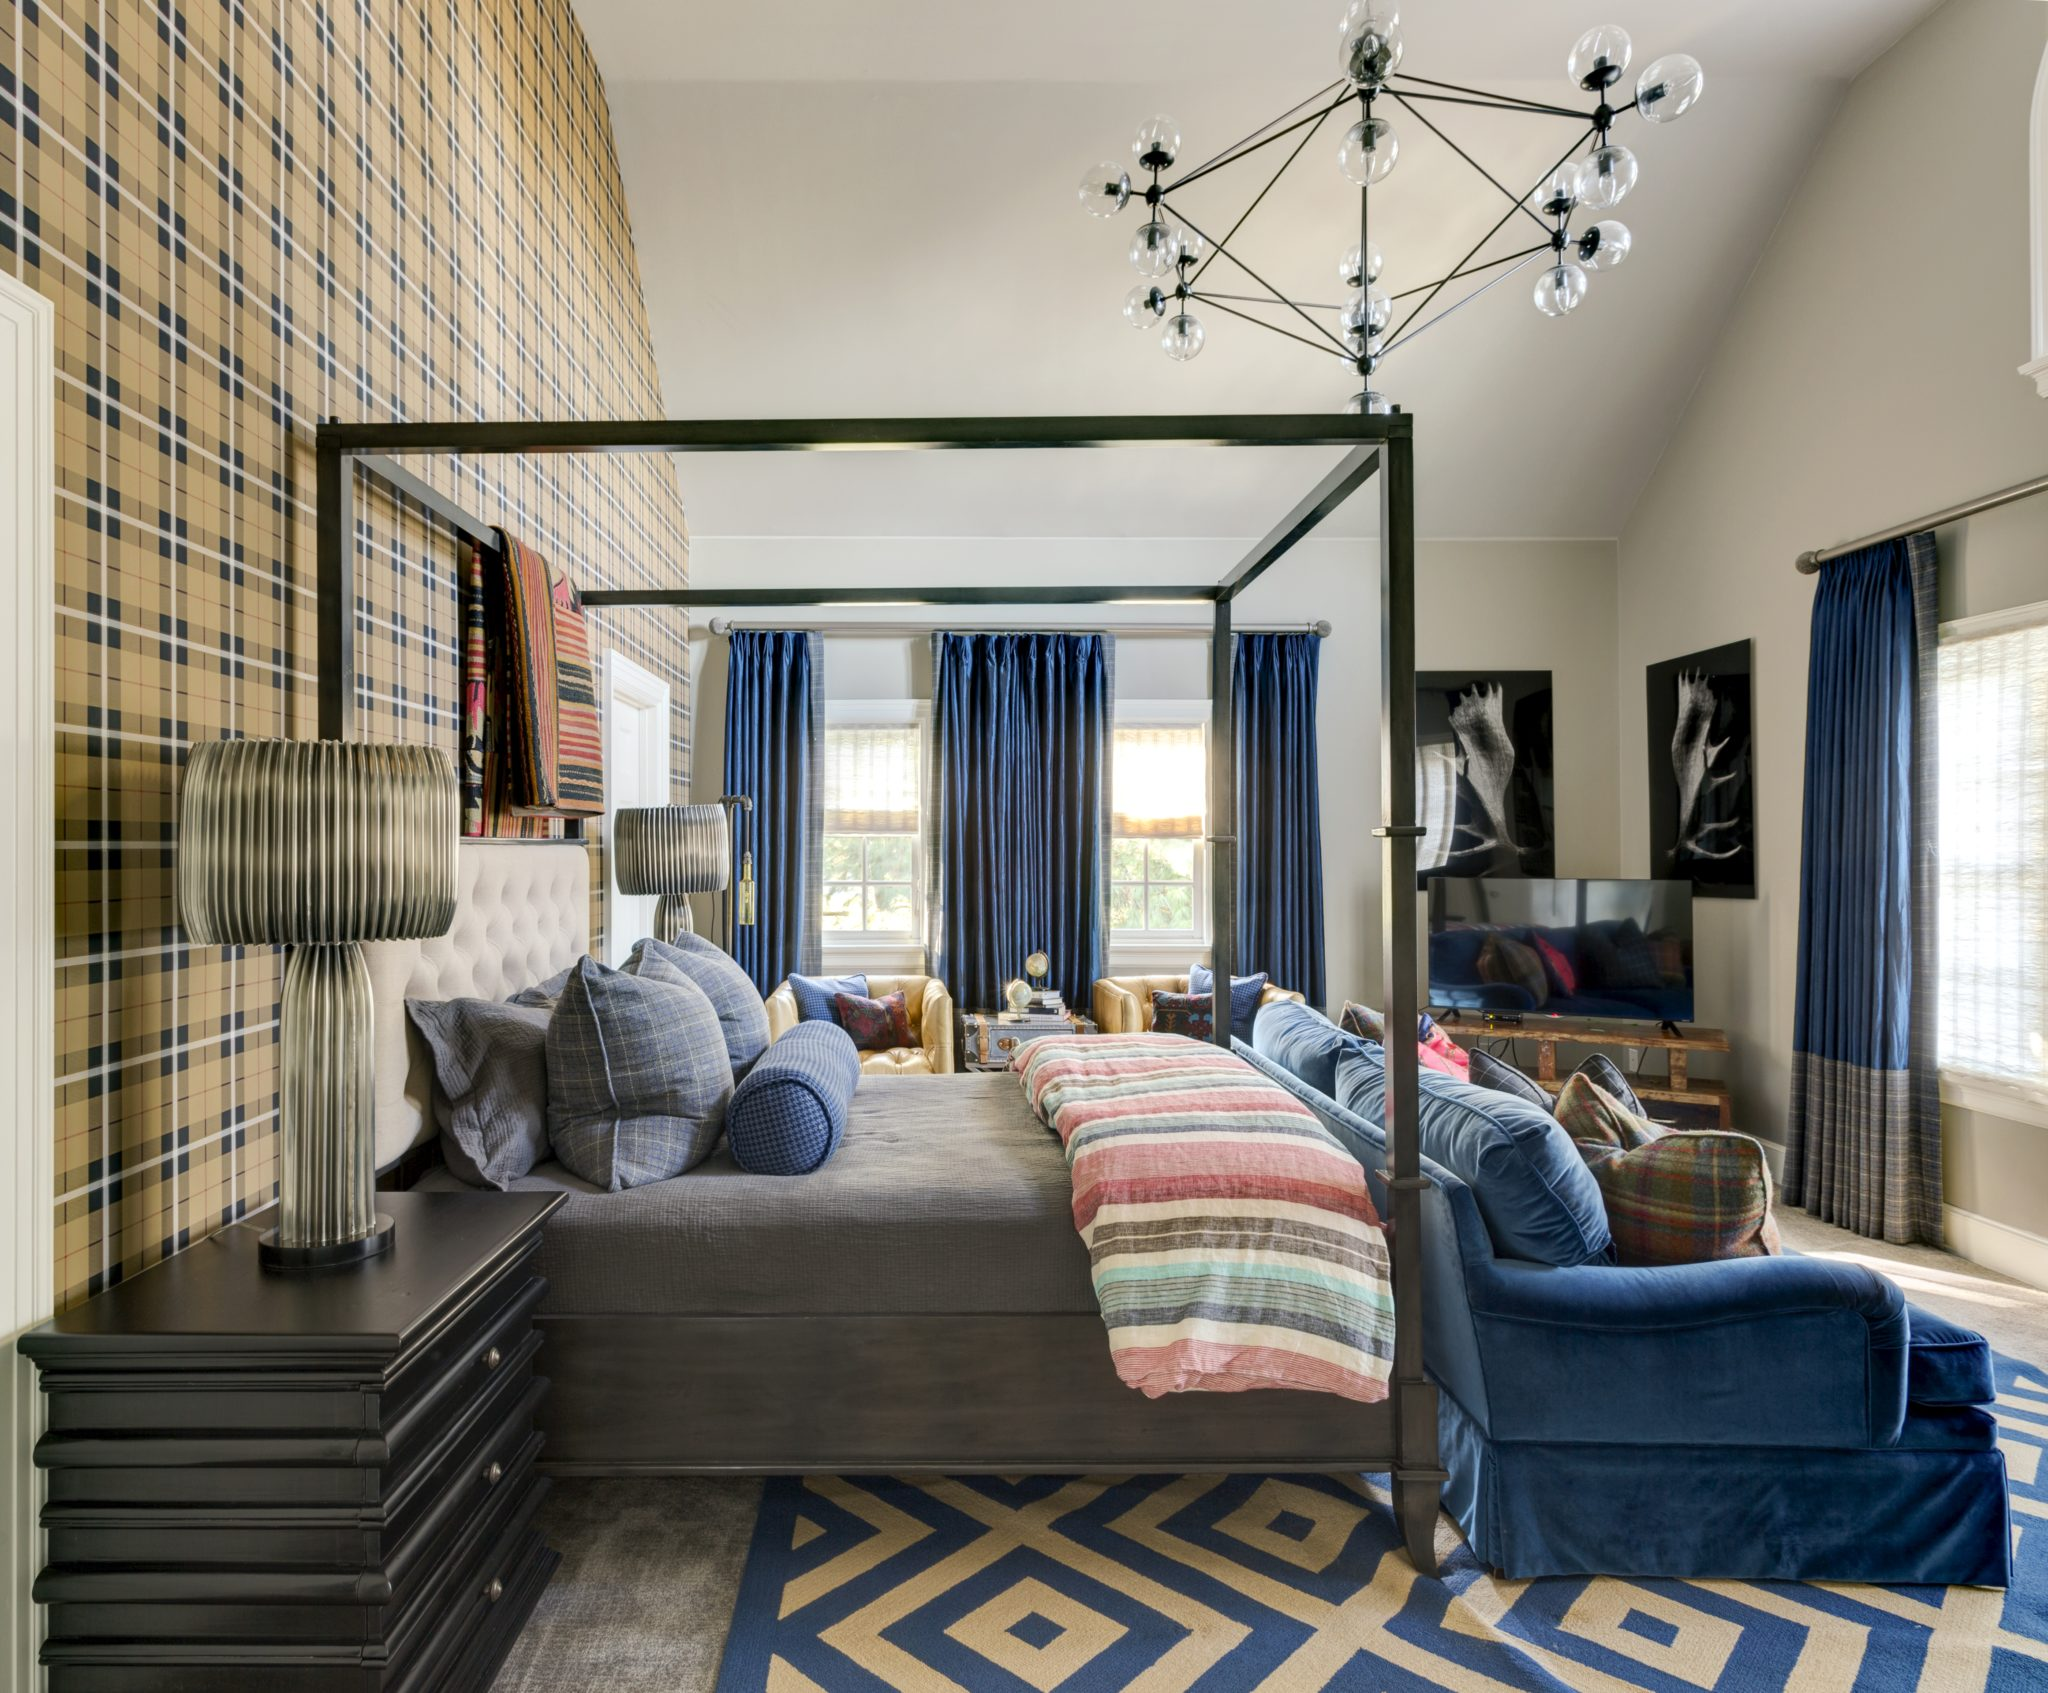 Bedroom highlighted with cobalt blue plaids and tribal textures by Goddard Design Group